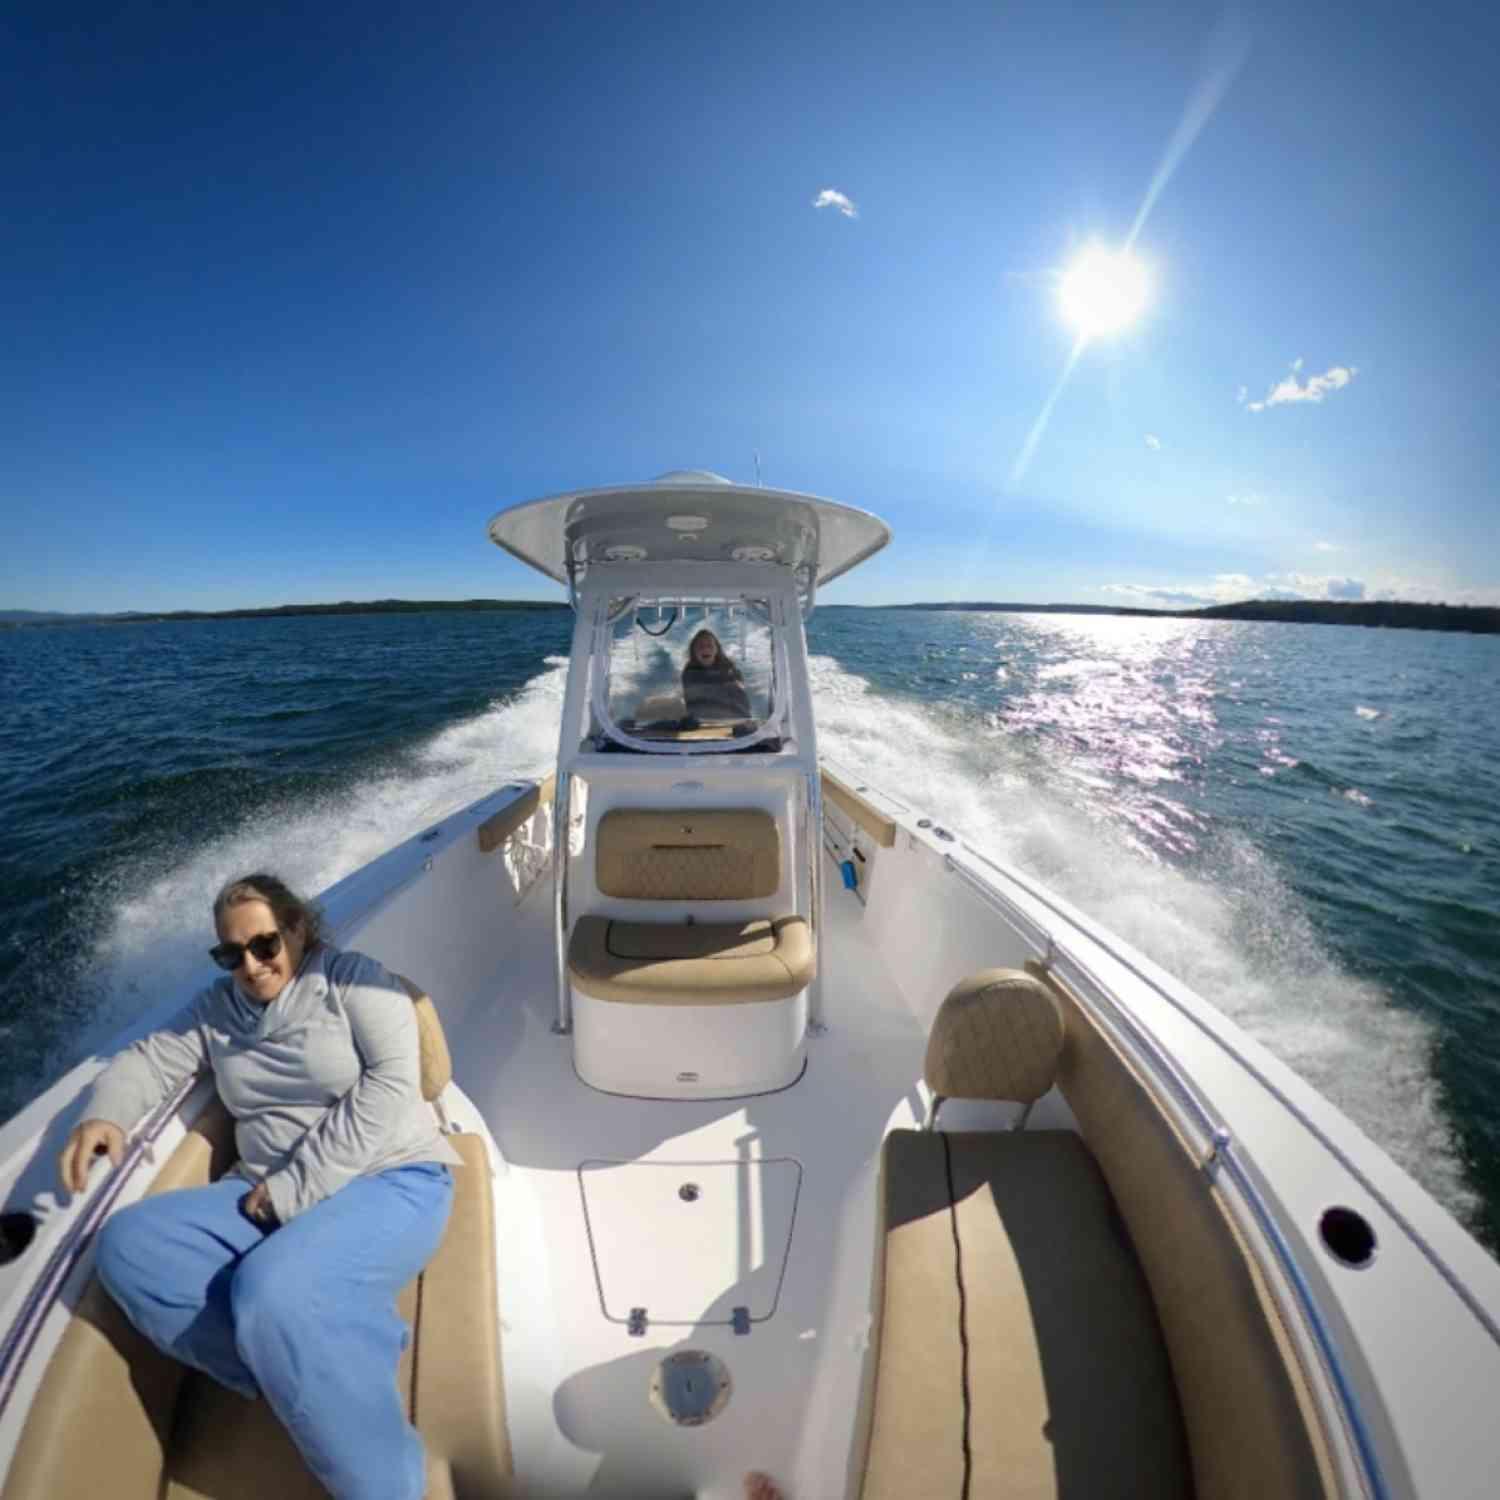 Title: Running with the sun - On board their Sportsman Heritage 241 Center Console - Location: Mount Desert Island, Maine. Participating in the Photo Contest #SportsmanSeptember2020